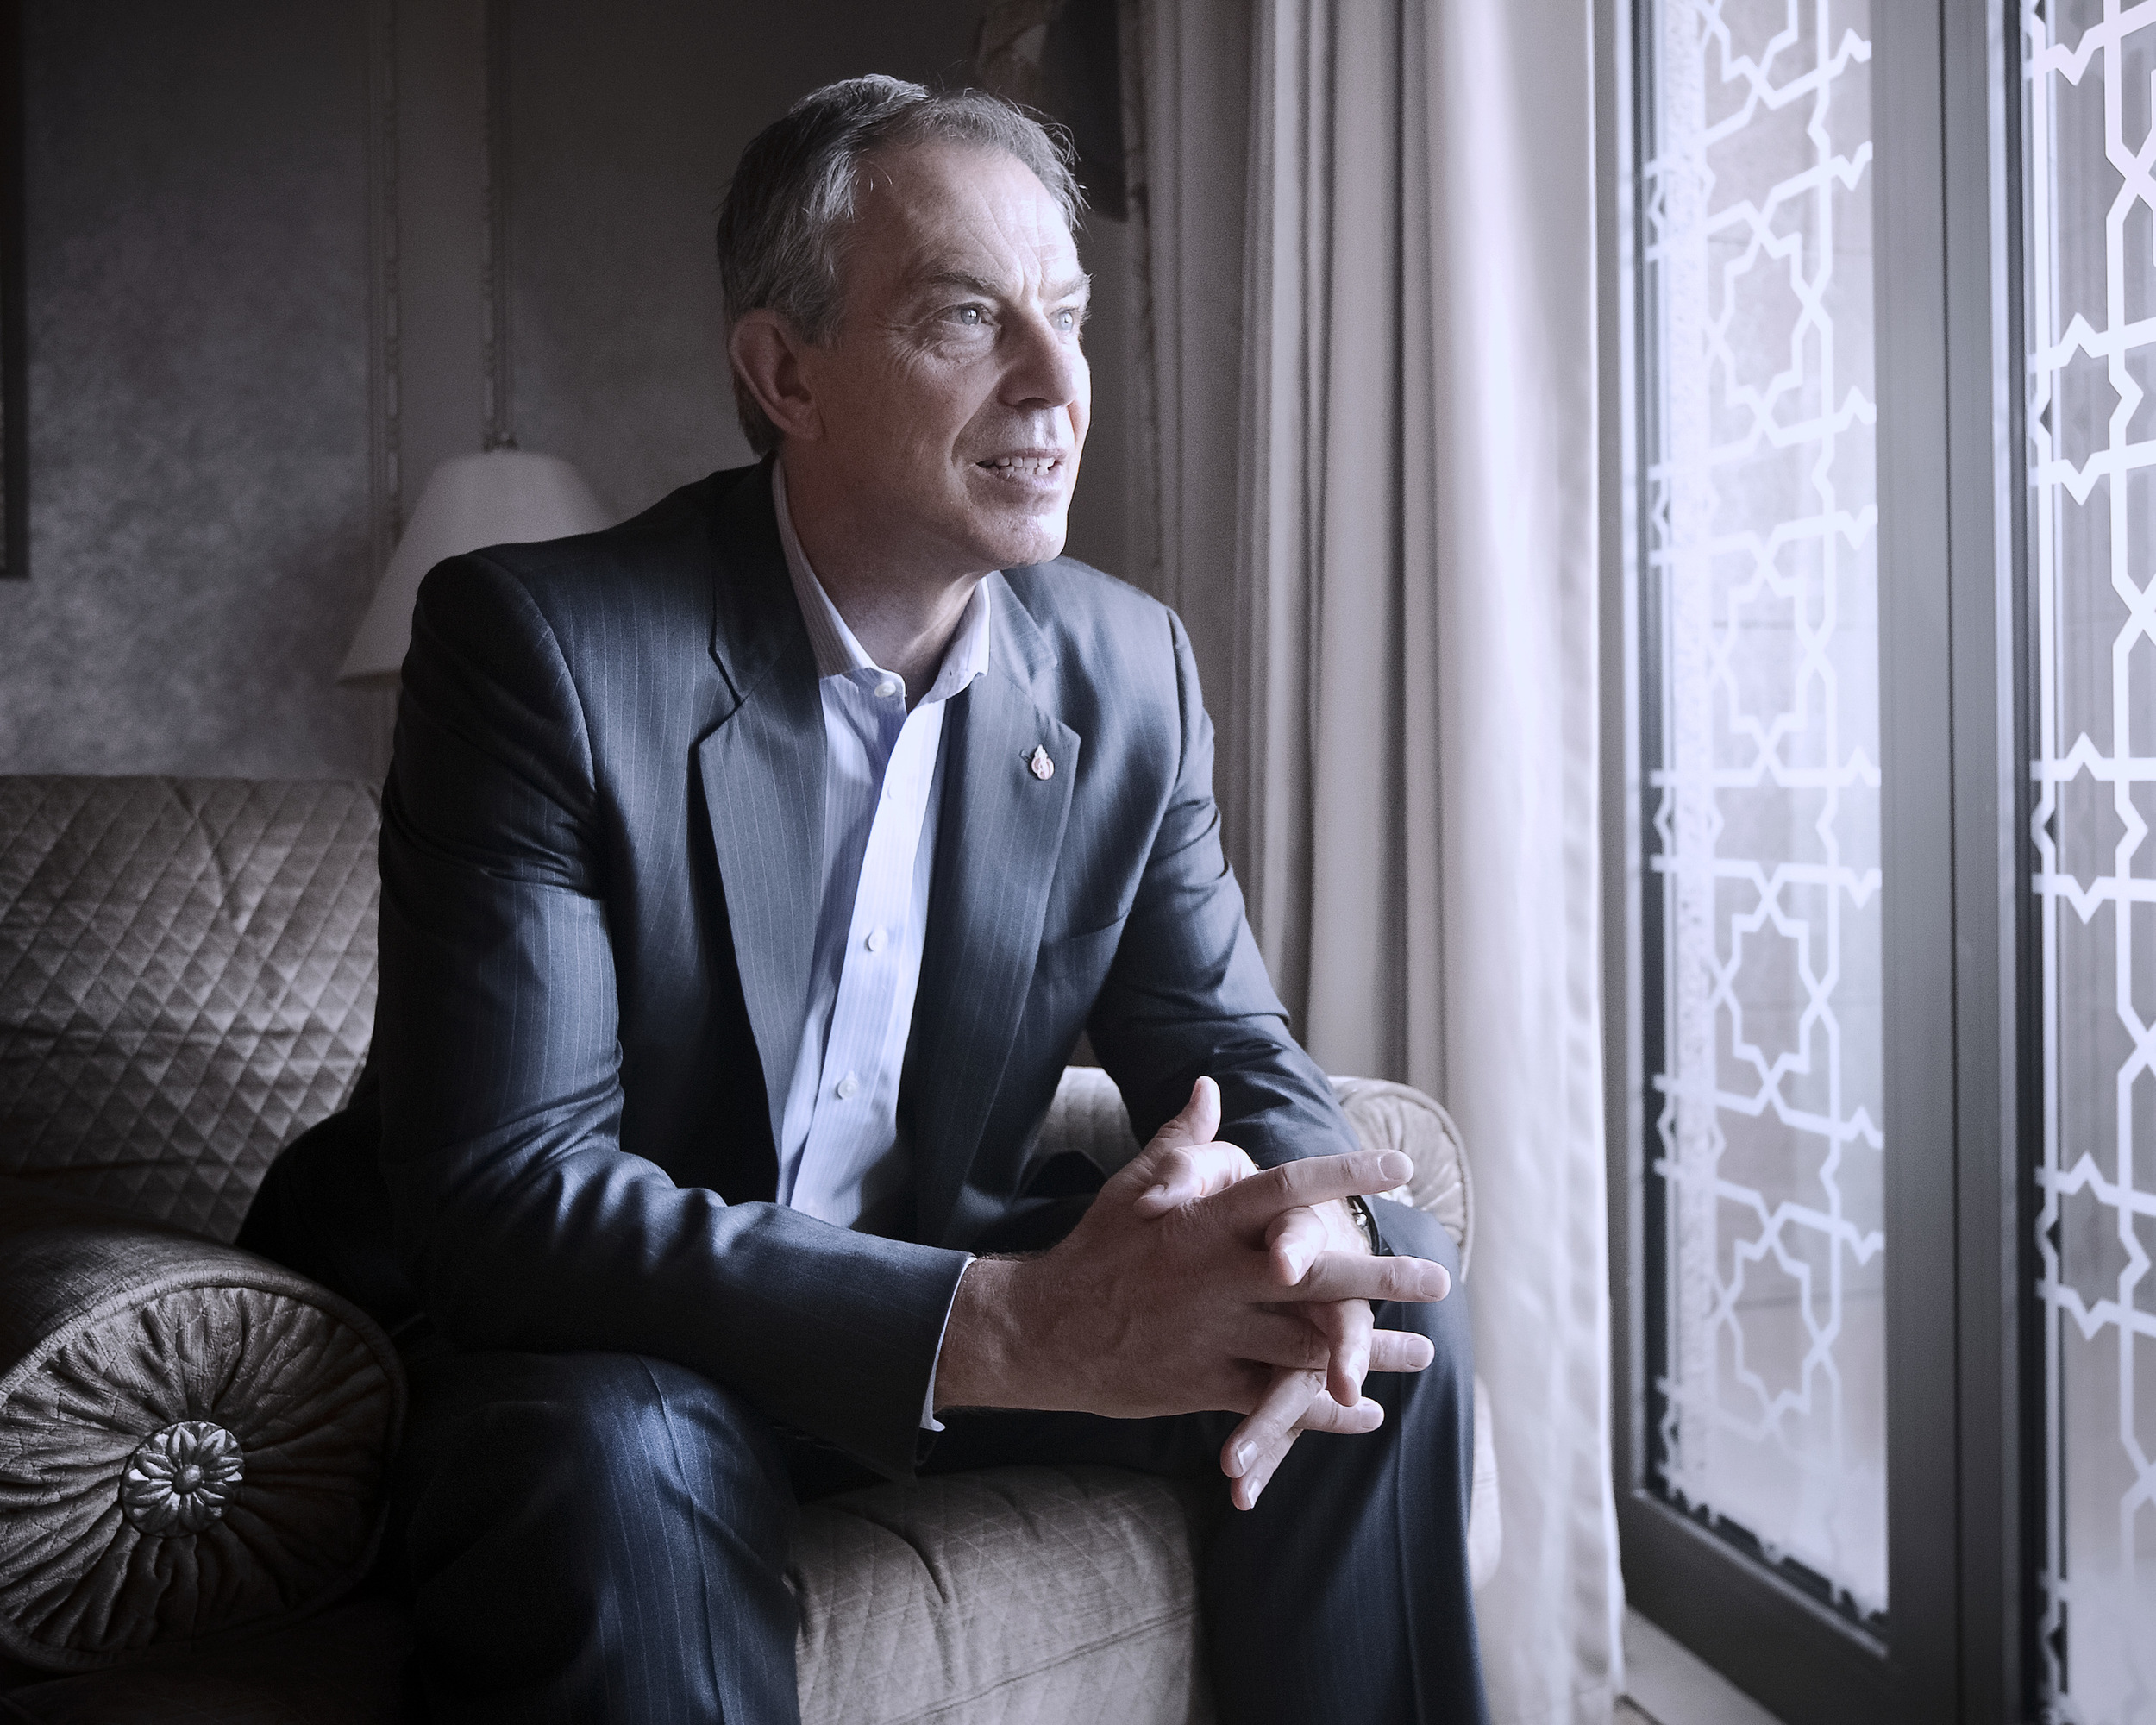 Former UK Prime Minister Tony Blair inside of the Emirates Palace in Abu Dhabi.